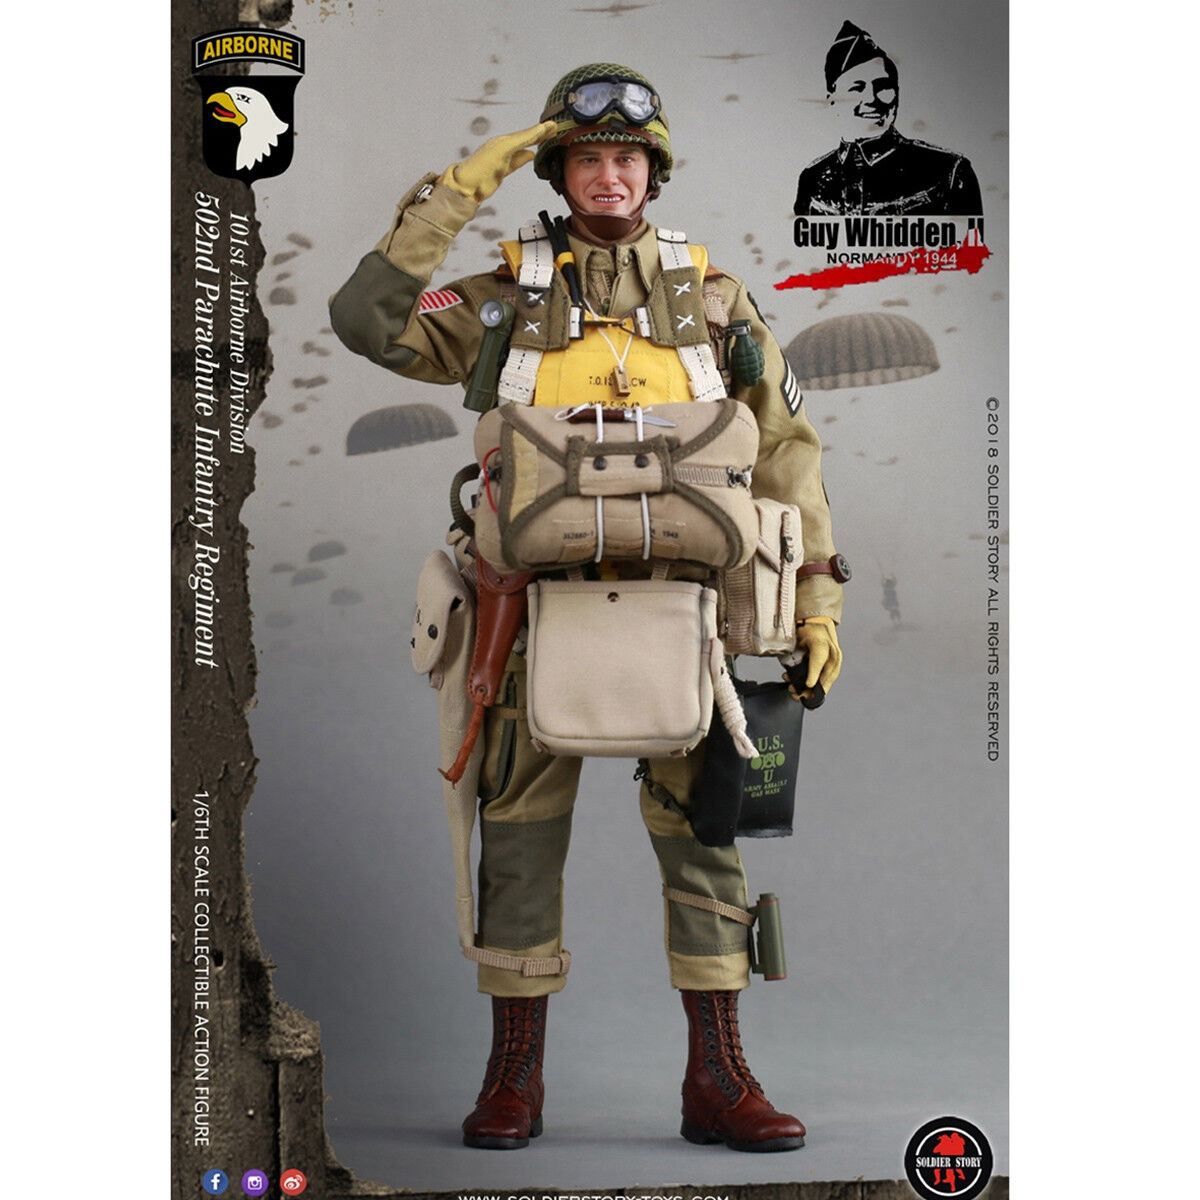 SoldierStory SS110 1 6 WWII 101st Airborne Division Guy Whidden Figure Model New